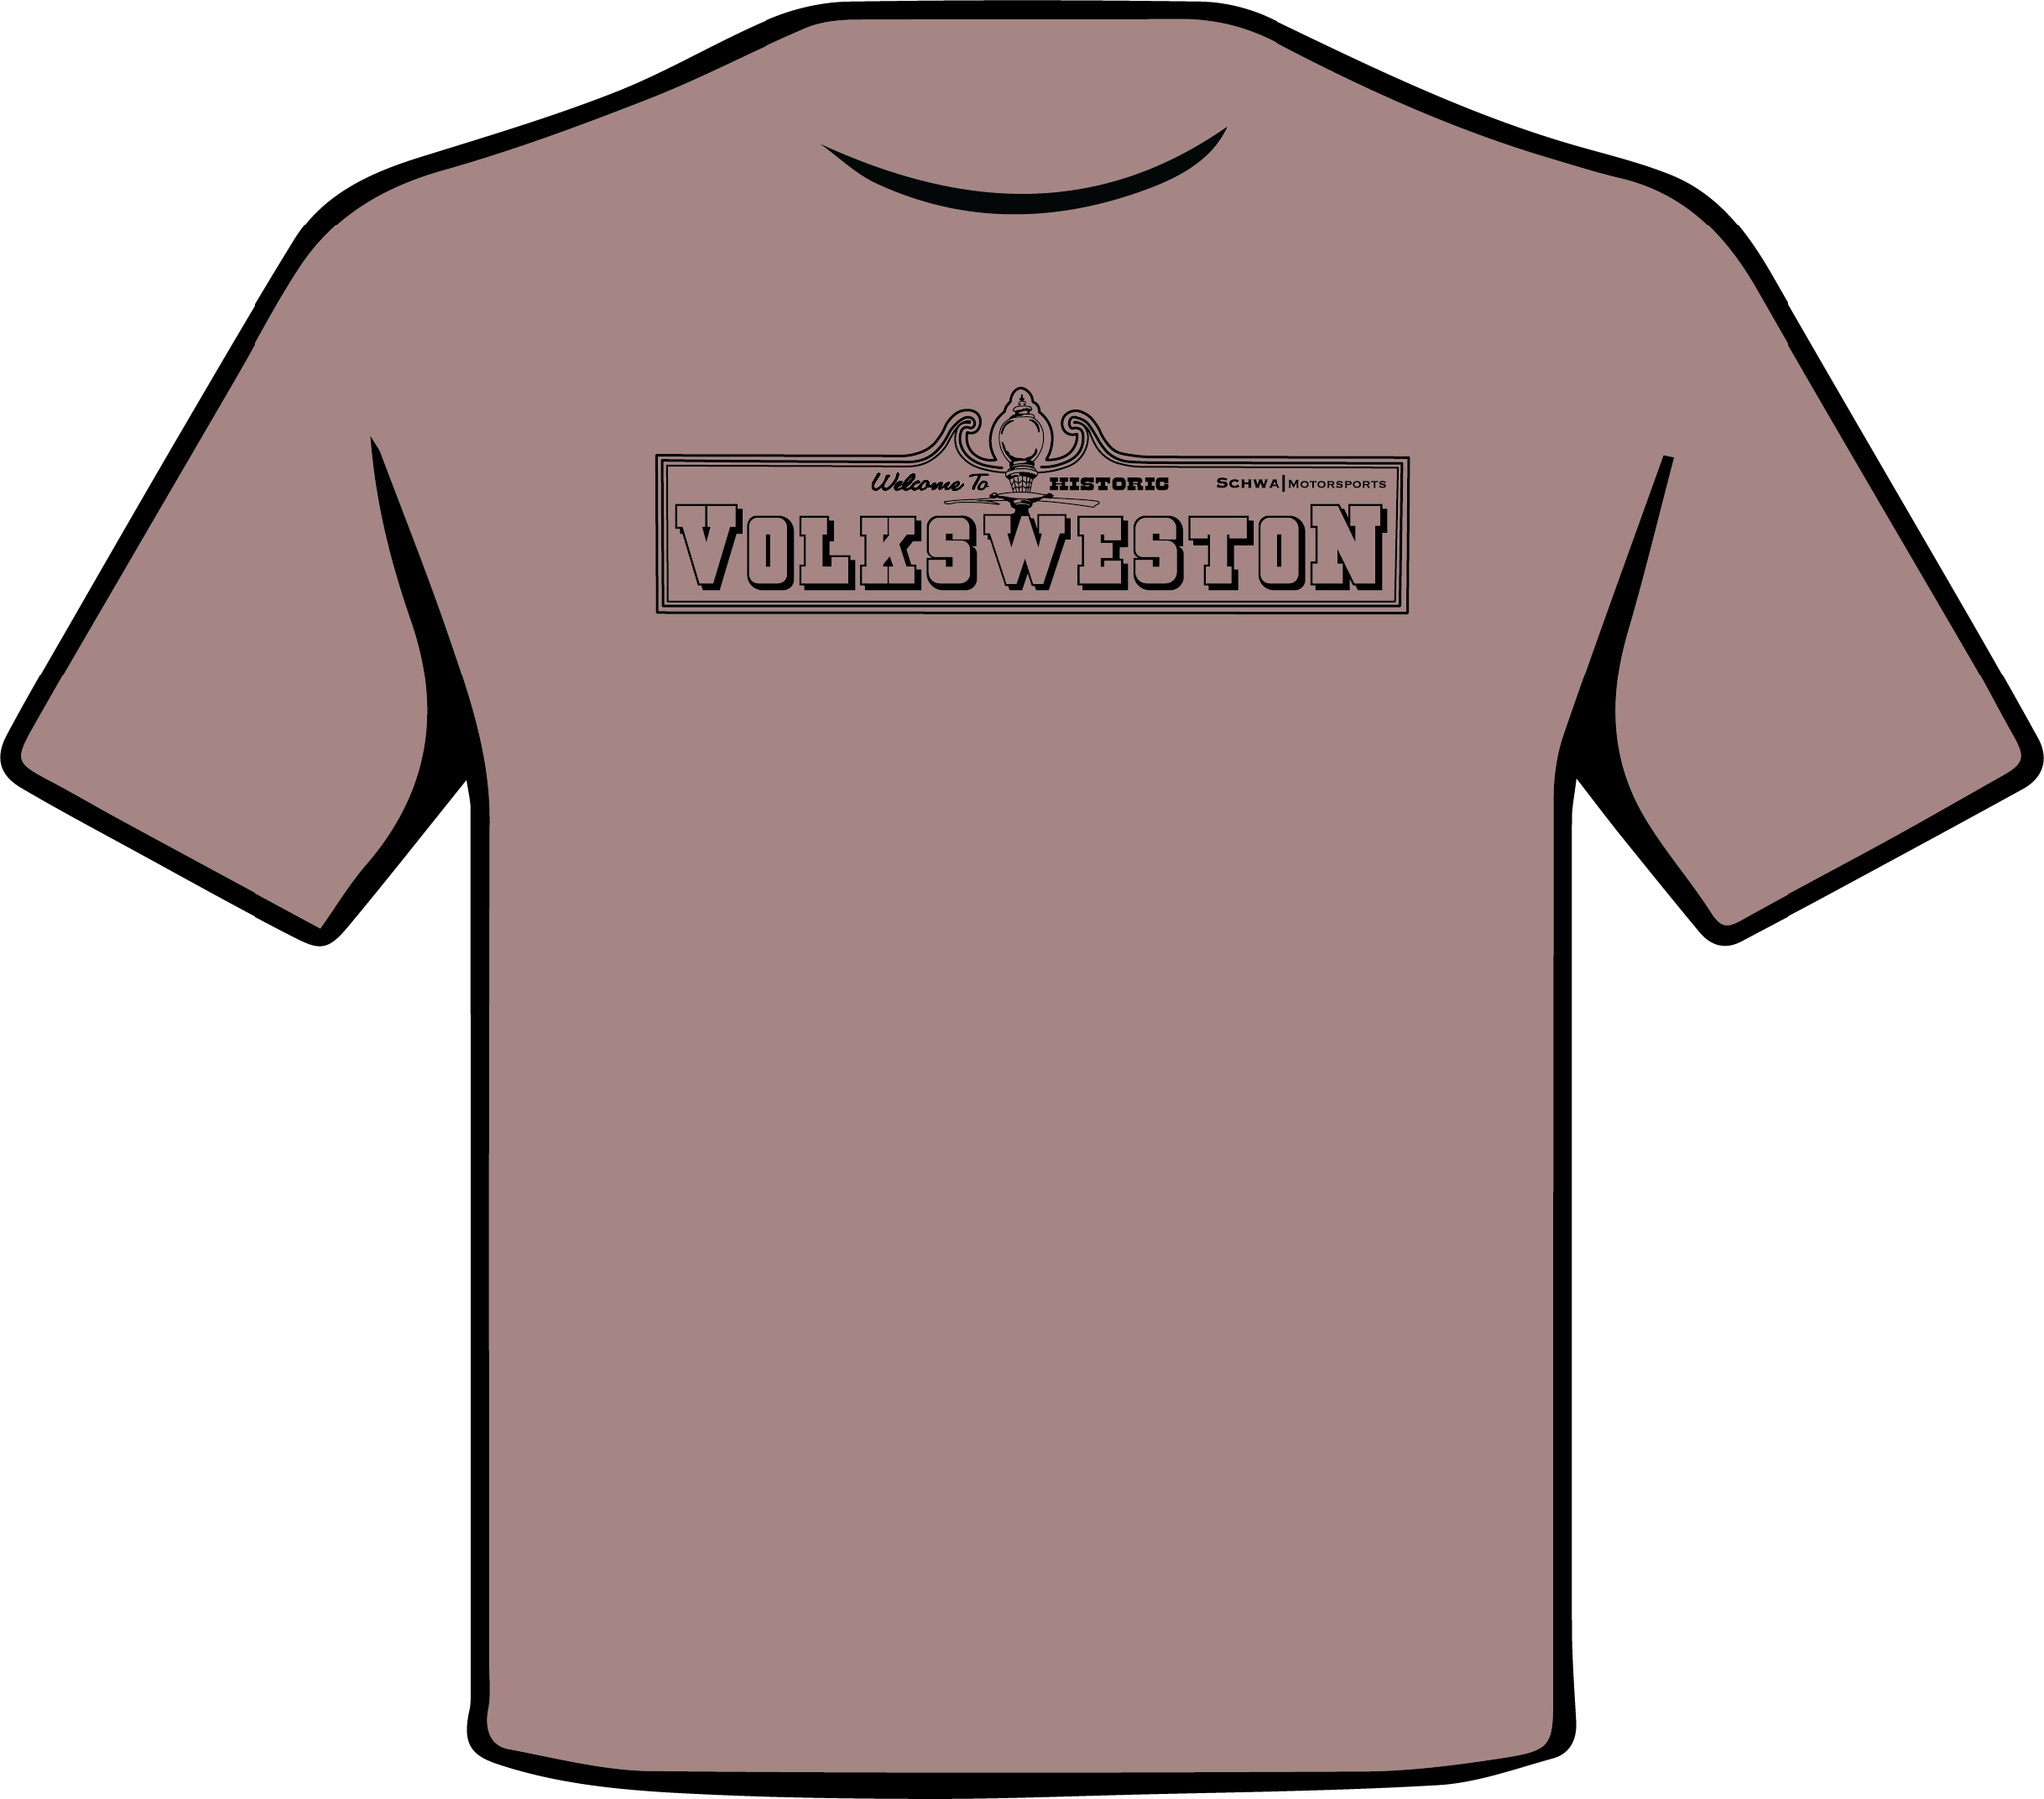 VolksWeston Show Welcome Sign Single Color T-Shirt